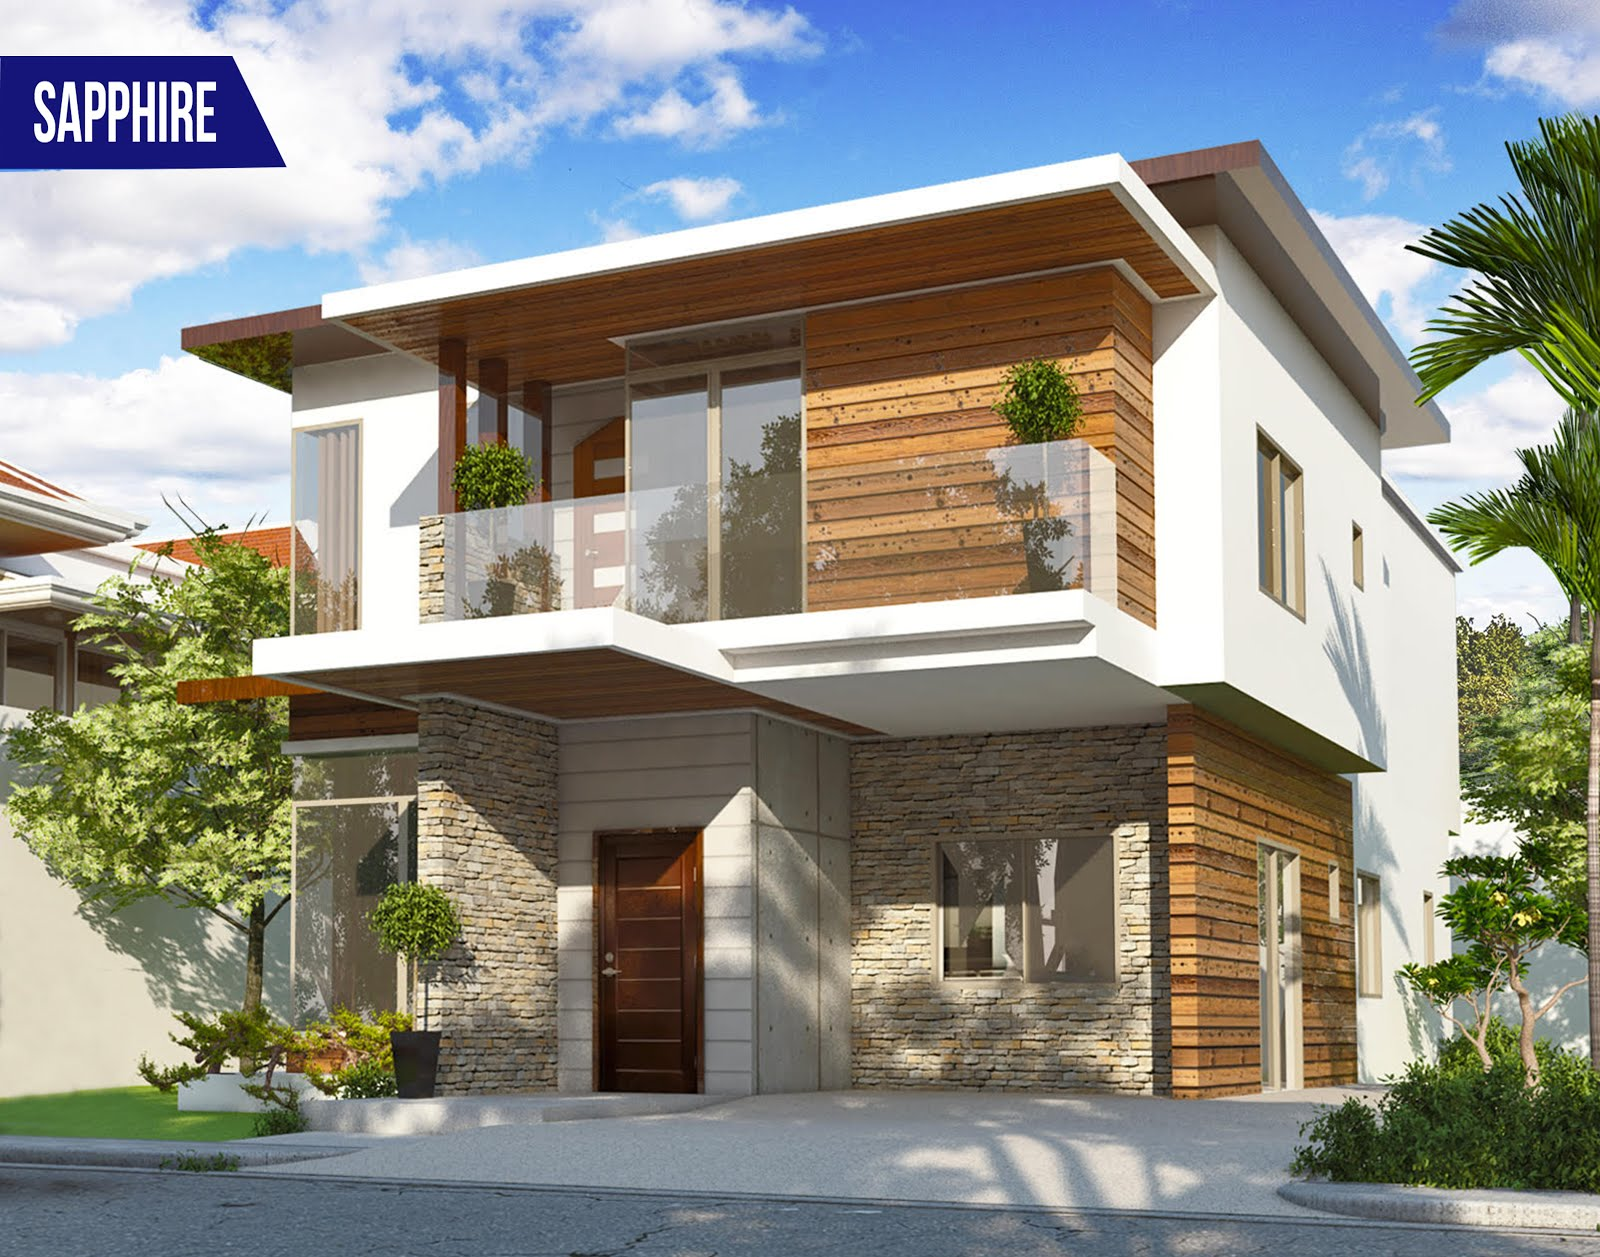 A smart philippine house builder the basics of latest for Latest house design images